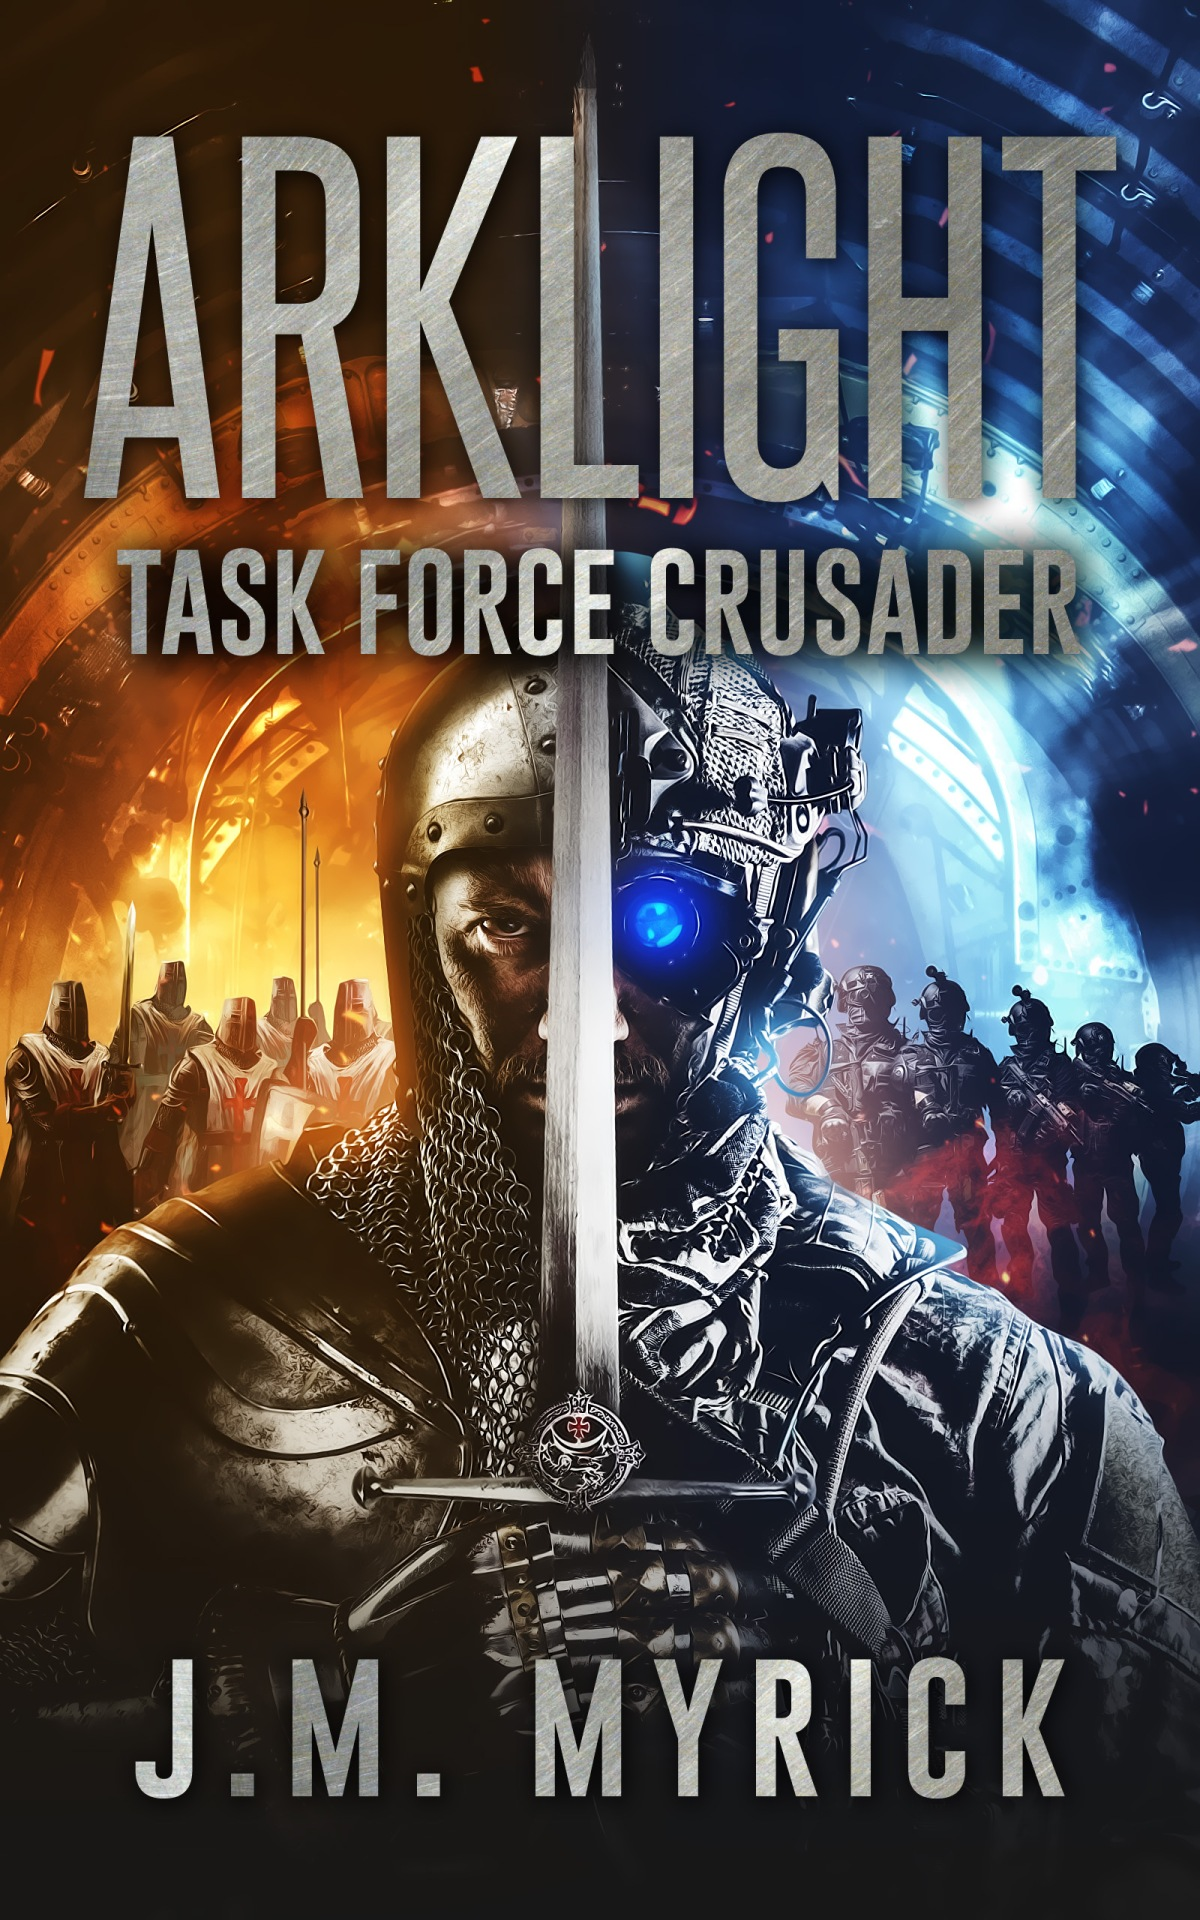 New Release: Task Force Crusader